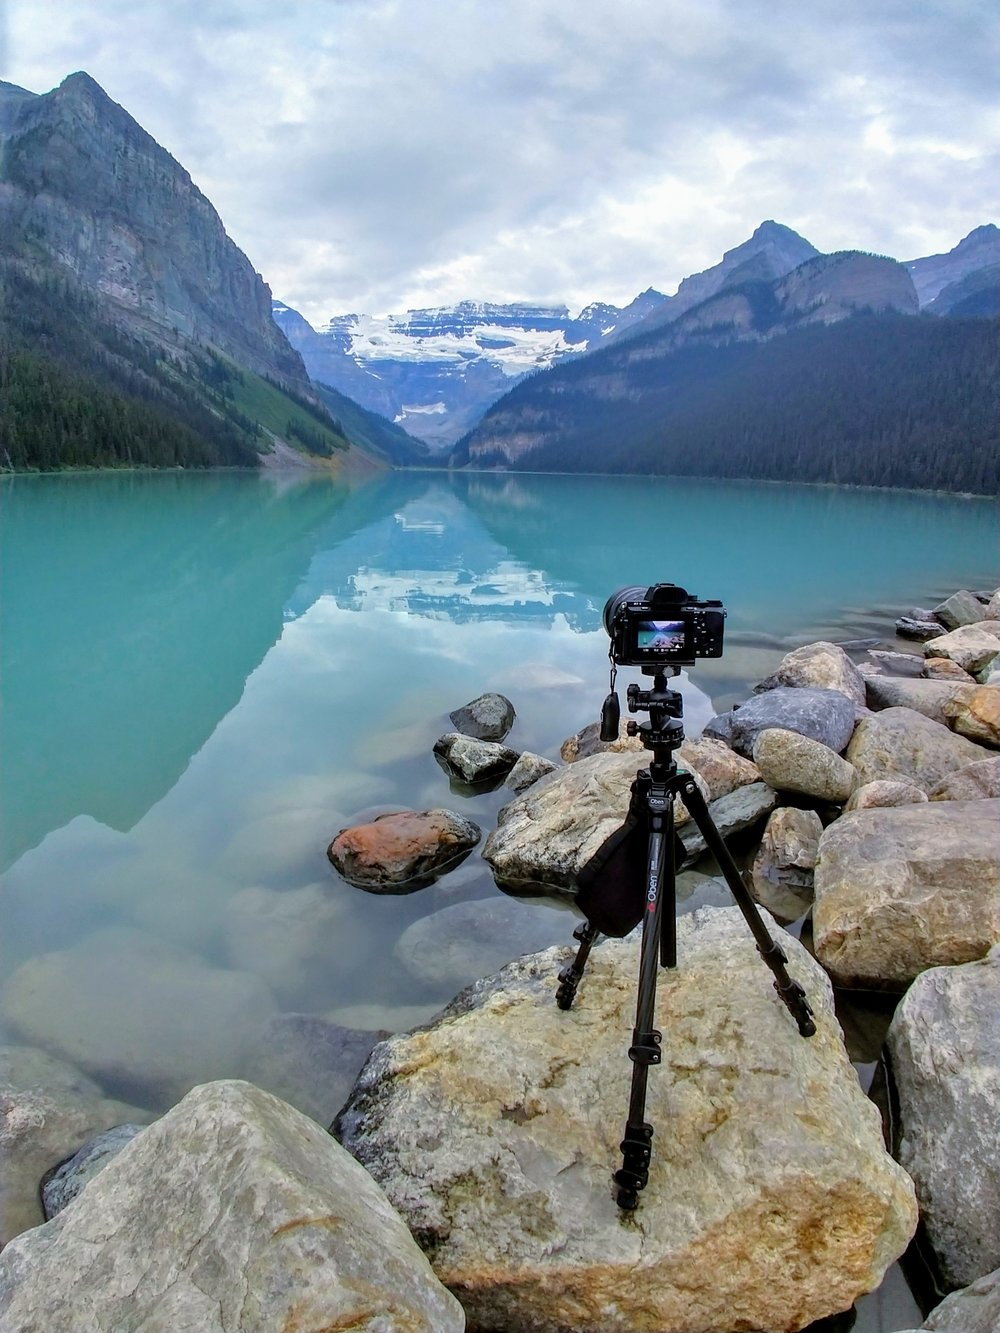 Photographing at Lake Louise. © Paul Nguyen